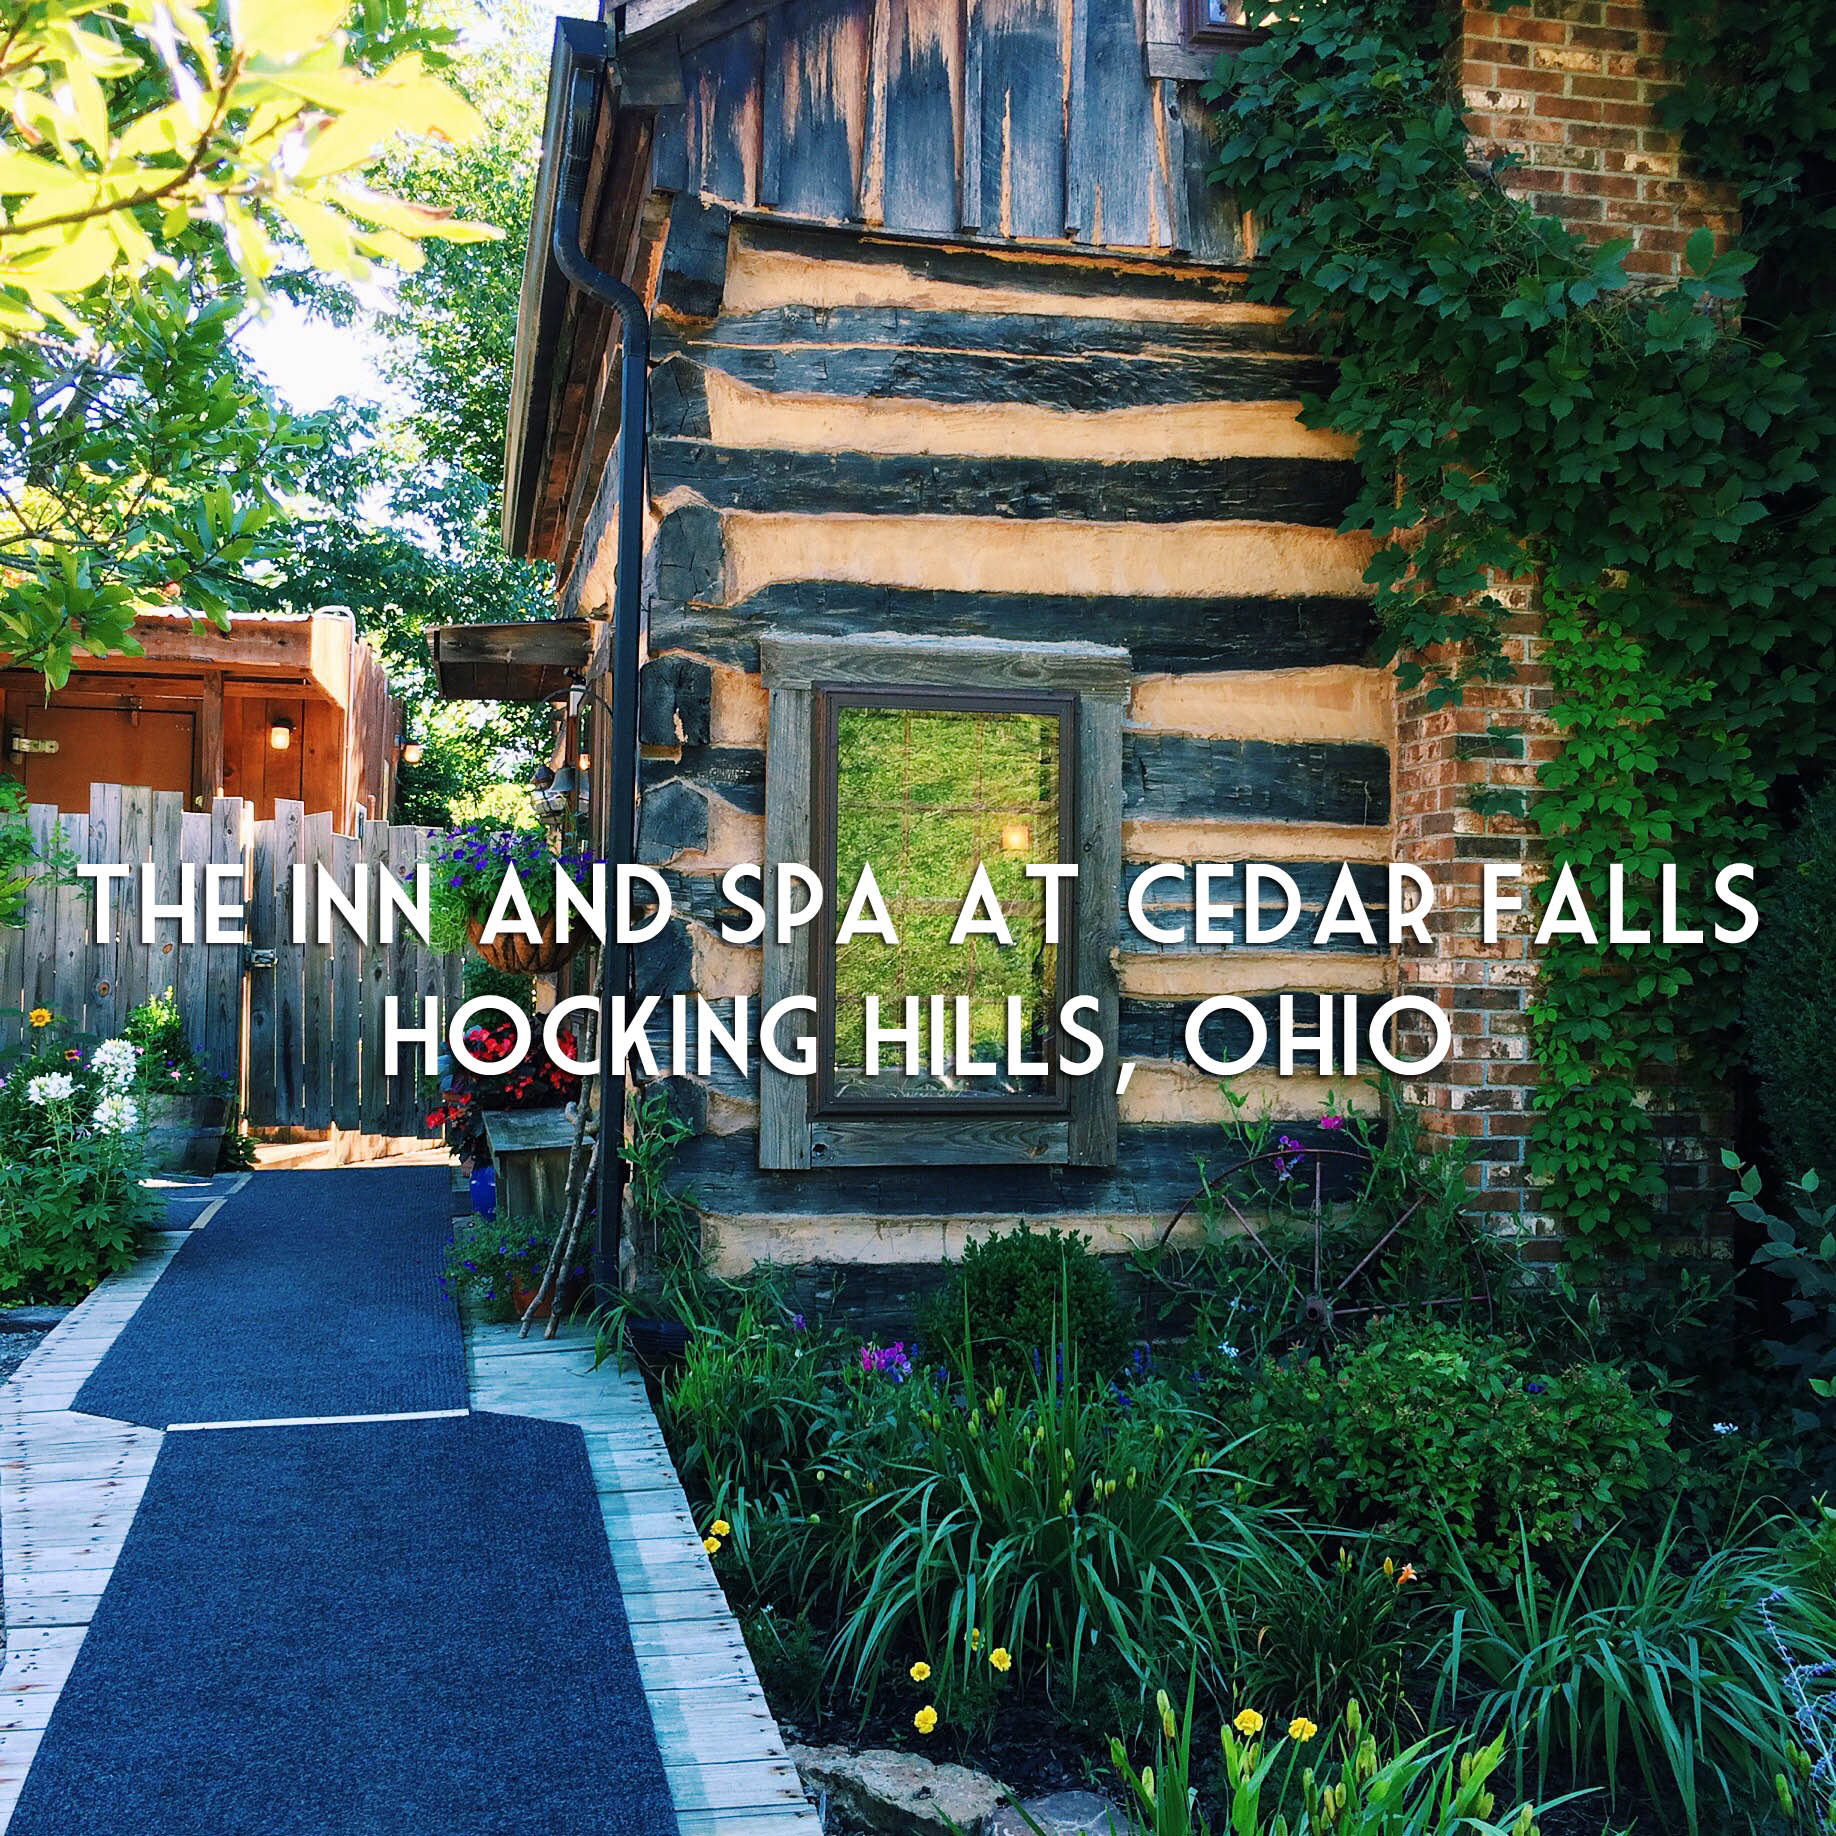 Inn and Spa at Cedar Falls